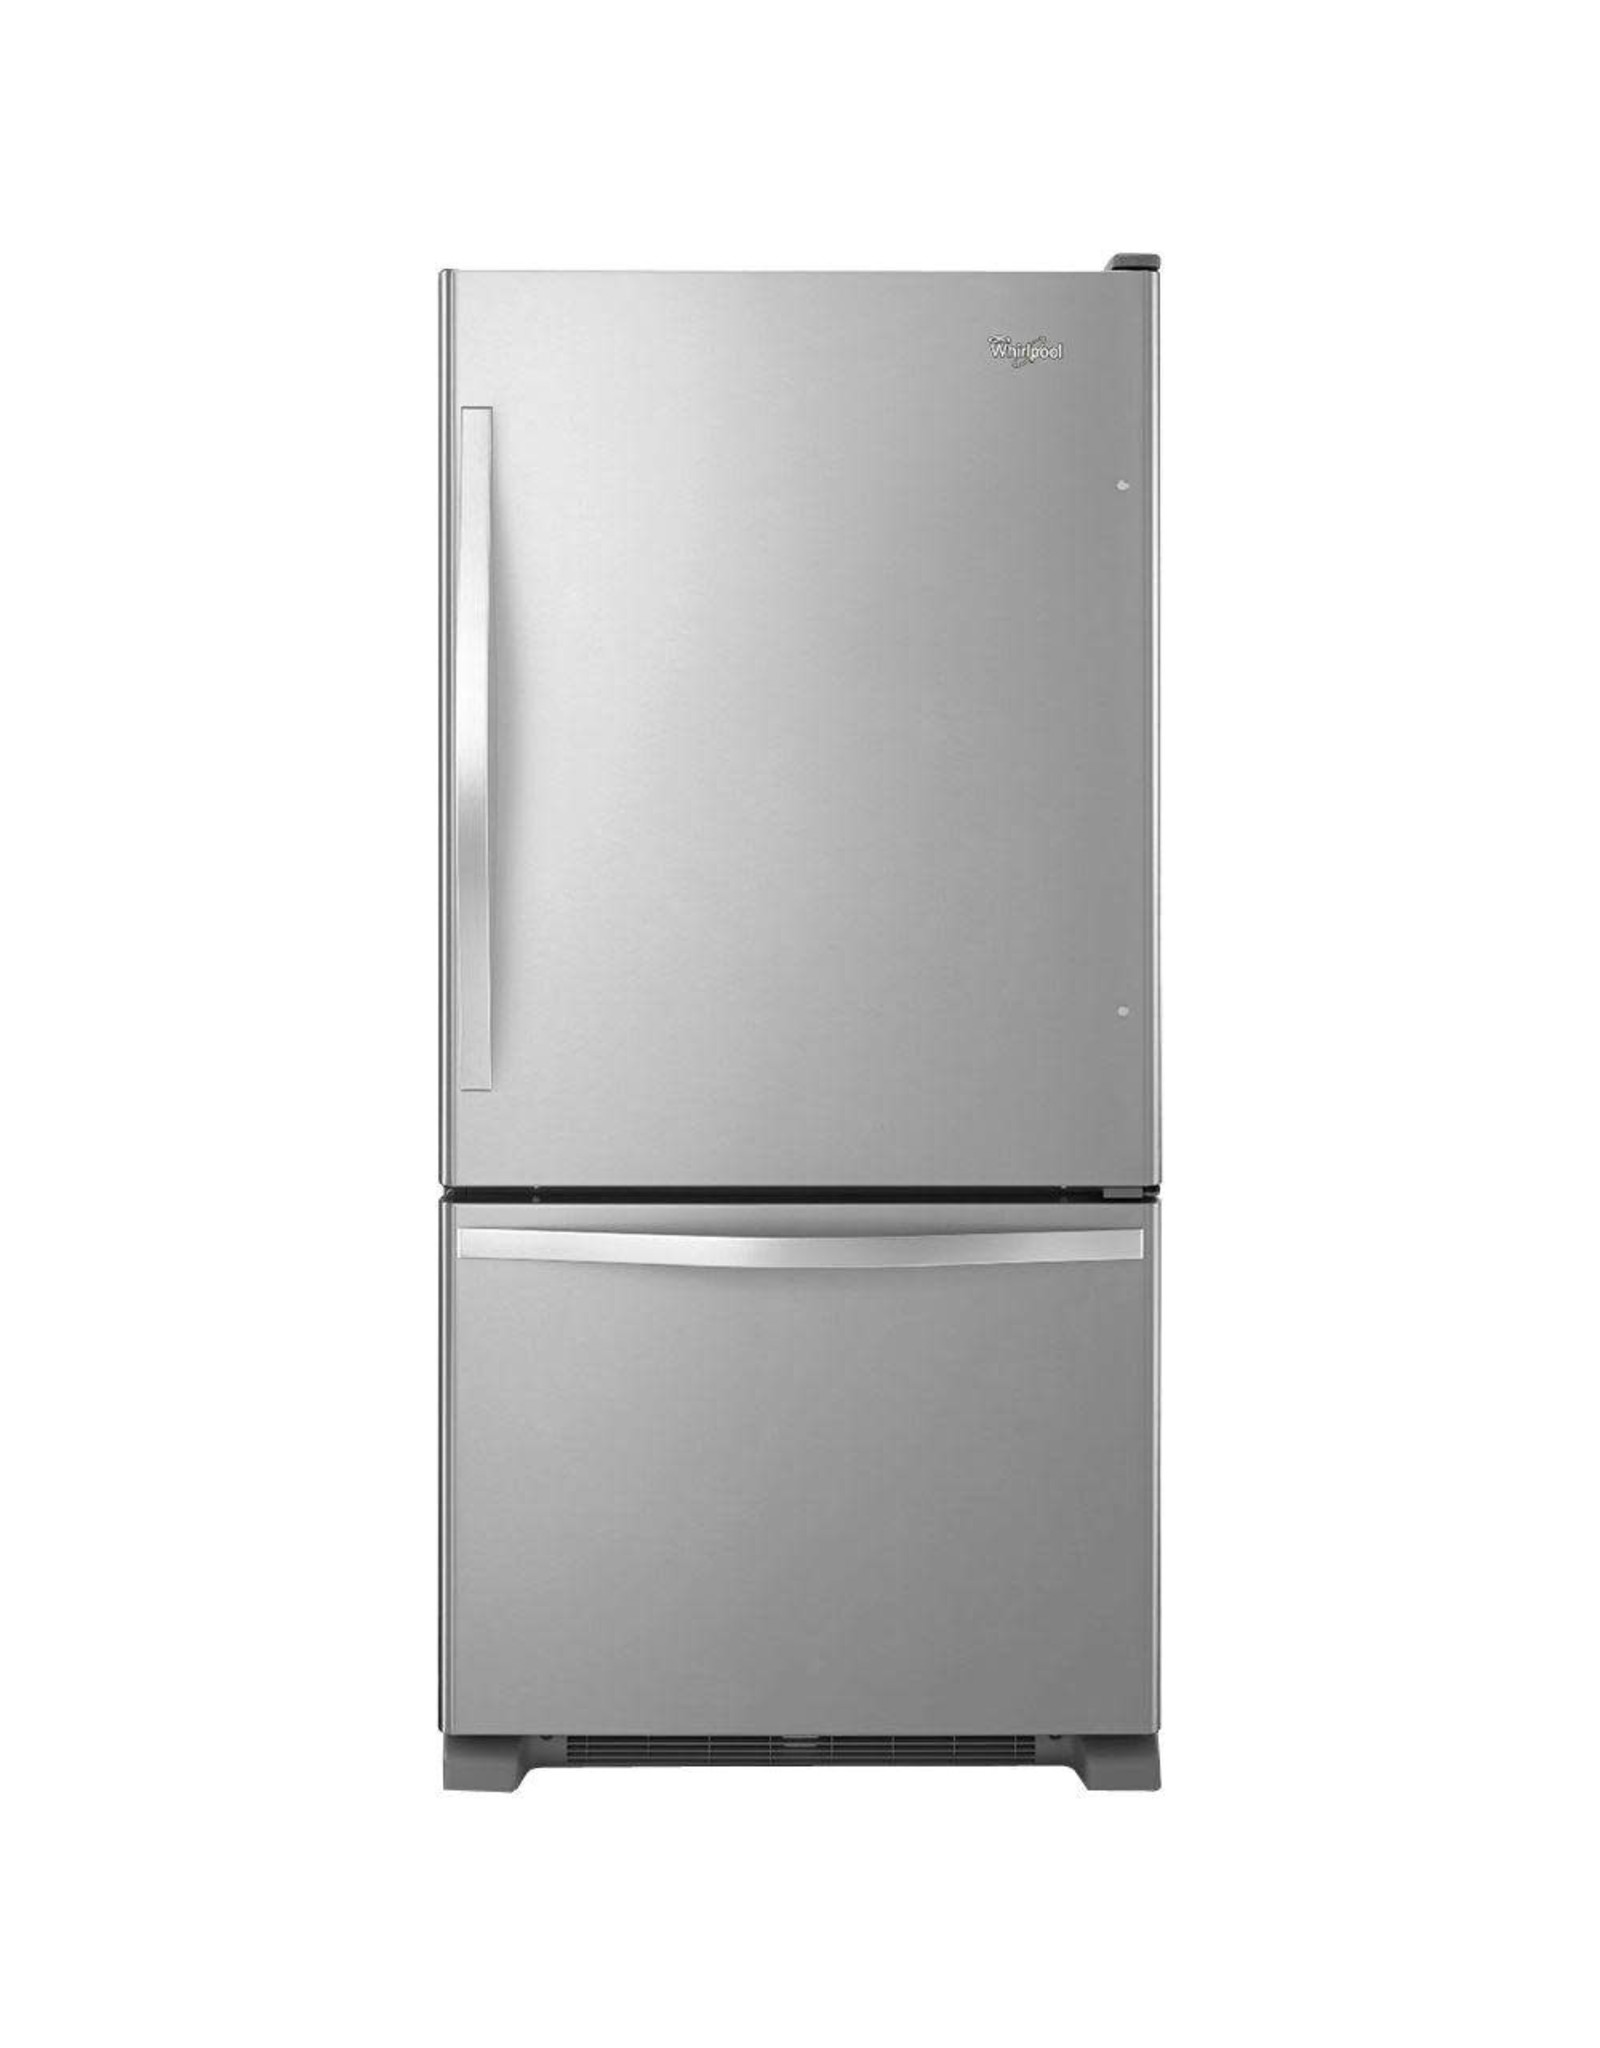 WRB322DMBM WHR No Frost Bottom-Free Standing Refr Frez - E-STAR, 22 CU FT, FACTORY INSTALLED ICE